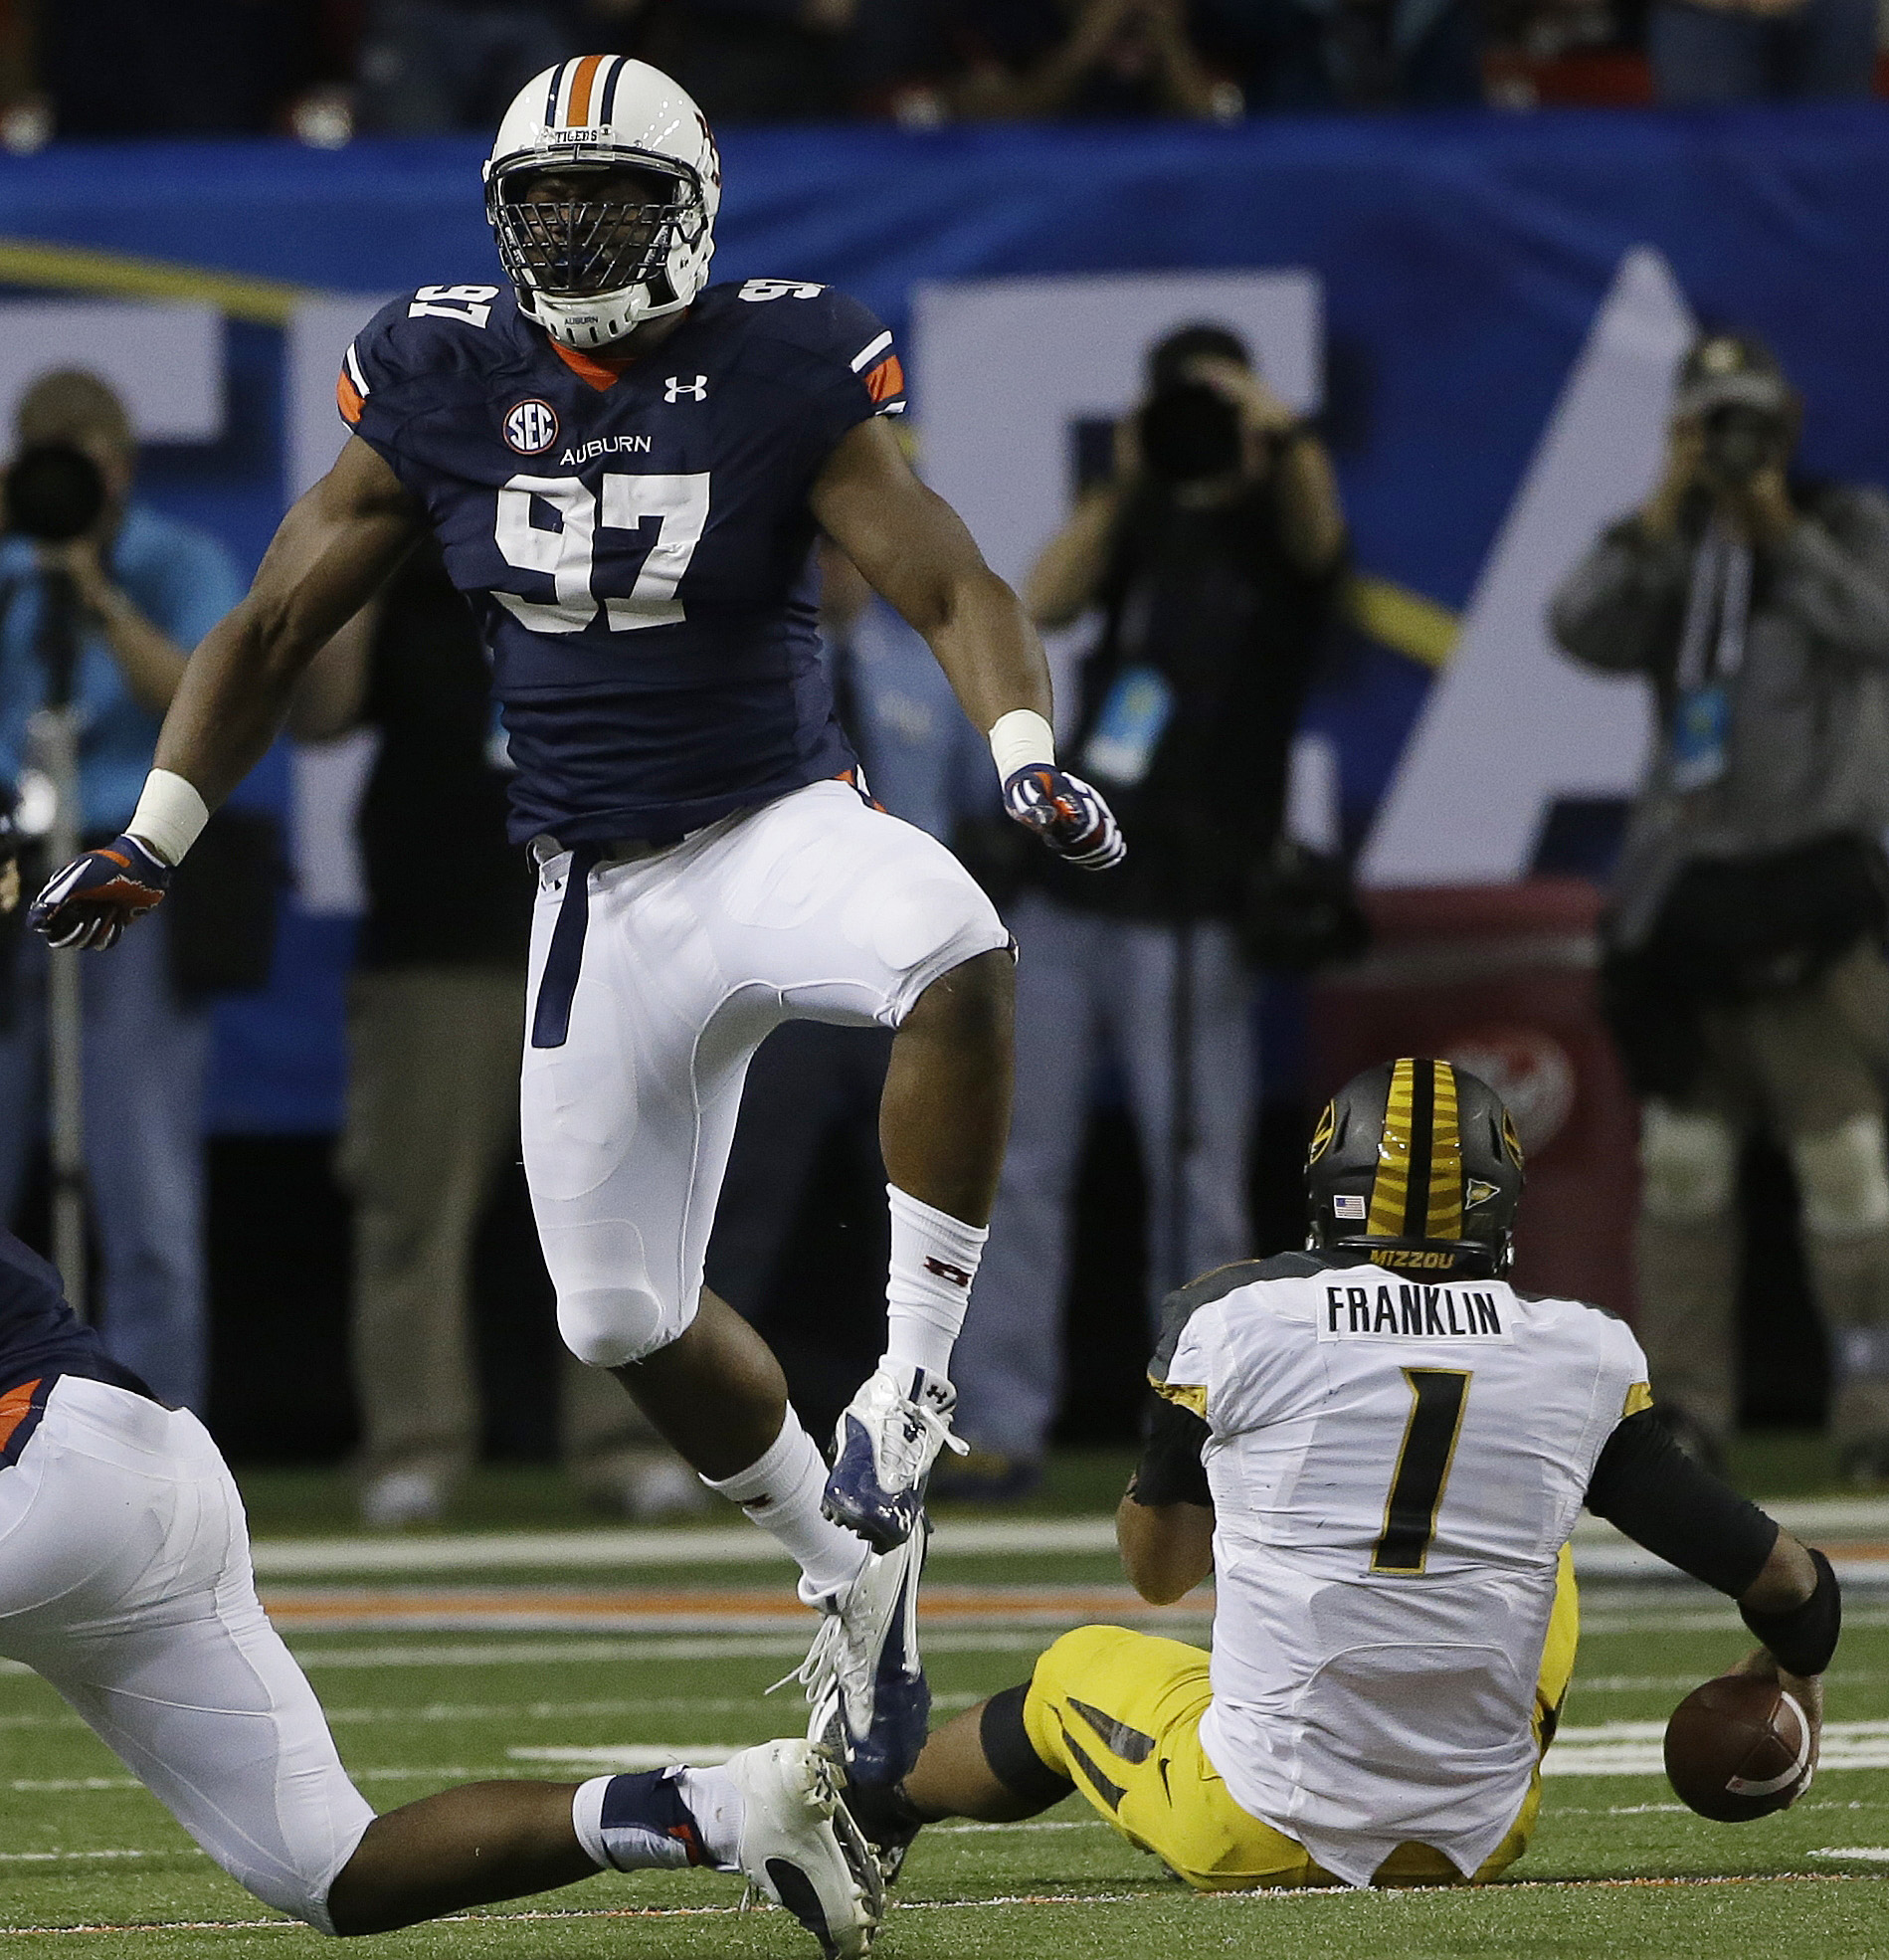 Auburn defensive end Elijah Daniel (97) celebrates sacking Missouri quarterback James Franklin (1) during the second half of the Southeastern Conference NCAA football championship game, Saturday, Dec. 7, 2013, in Atlanta. (AP Photo/John Bazemore)